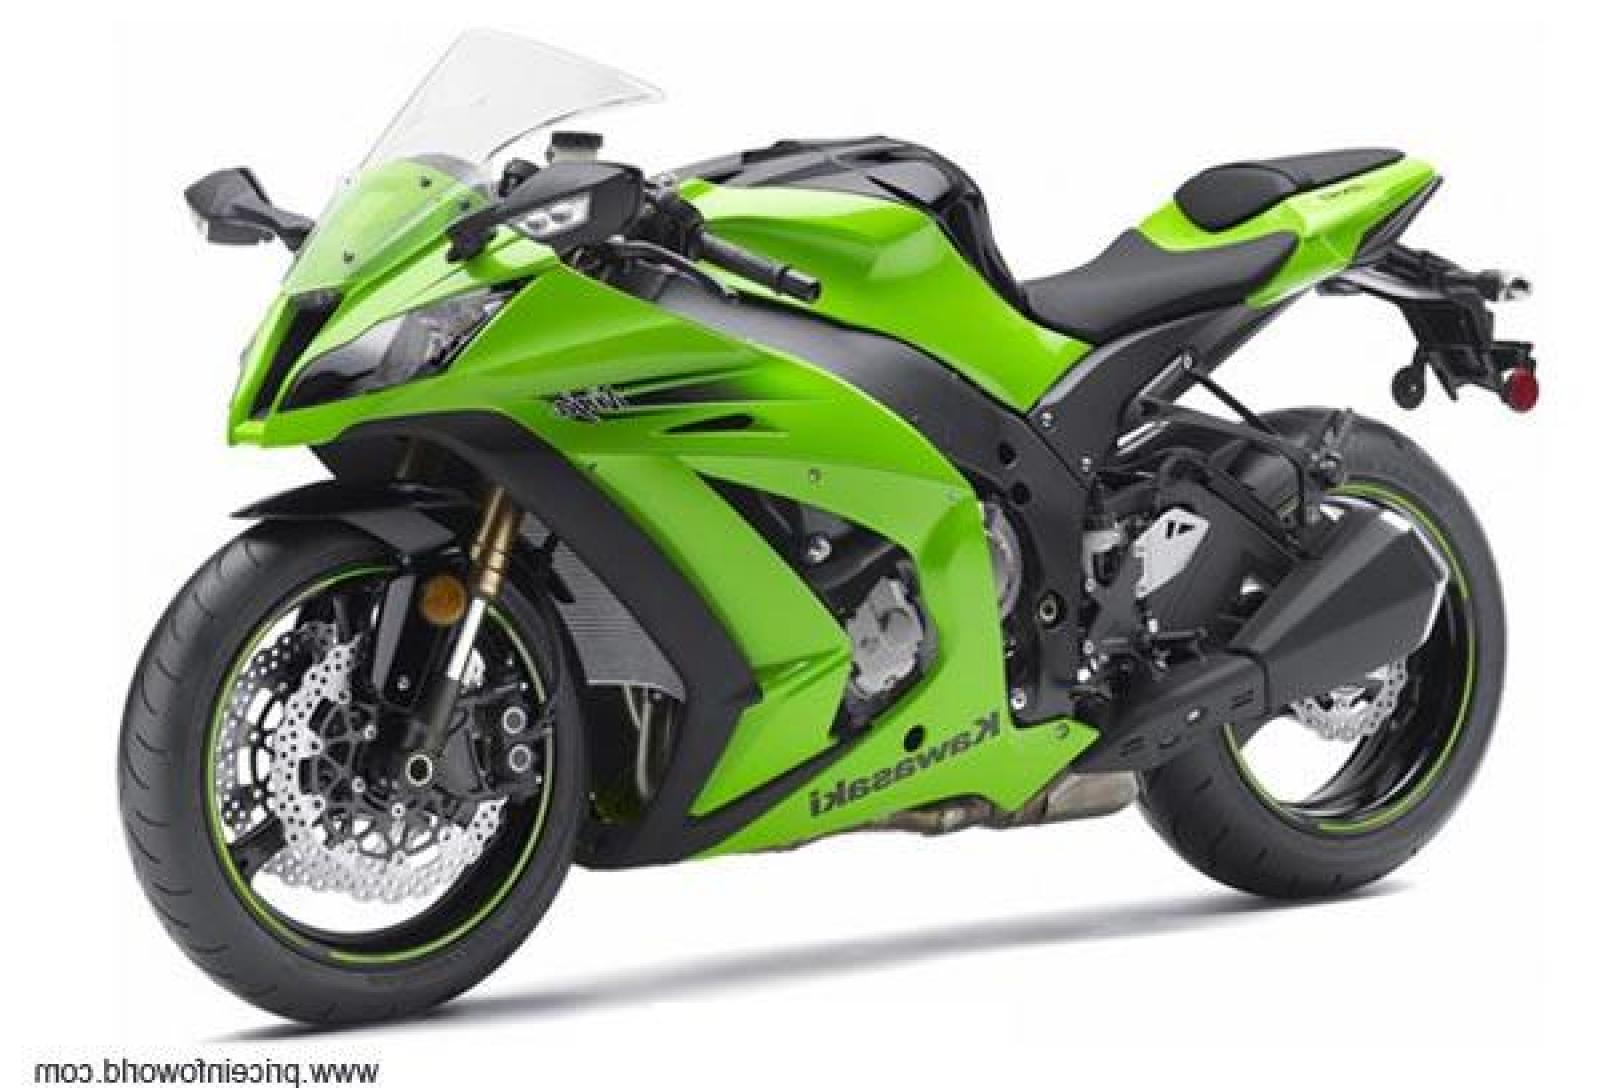 kawasaki kawasaki ninja 400r moto zombdrive com. Black Bedroom Furniture Sets. Home Design Ideas